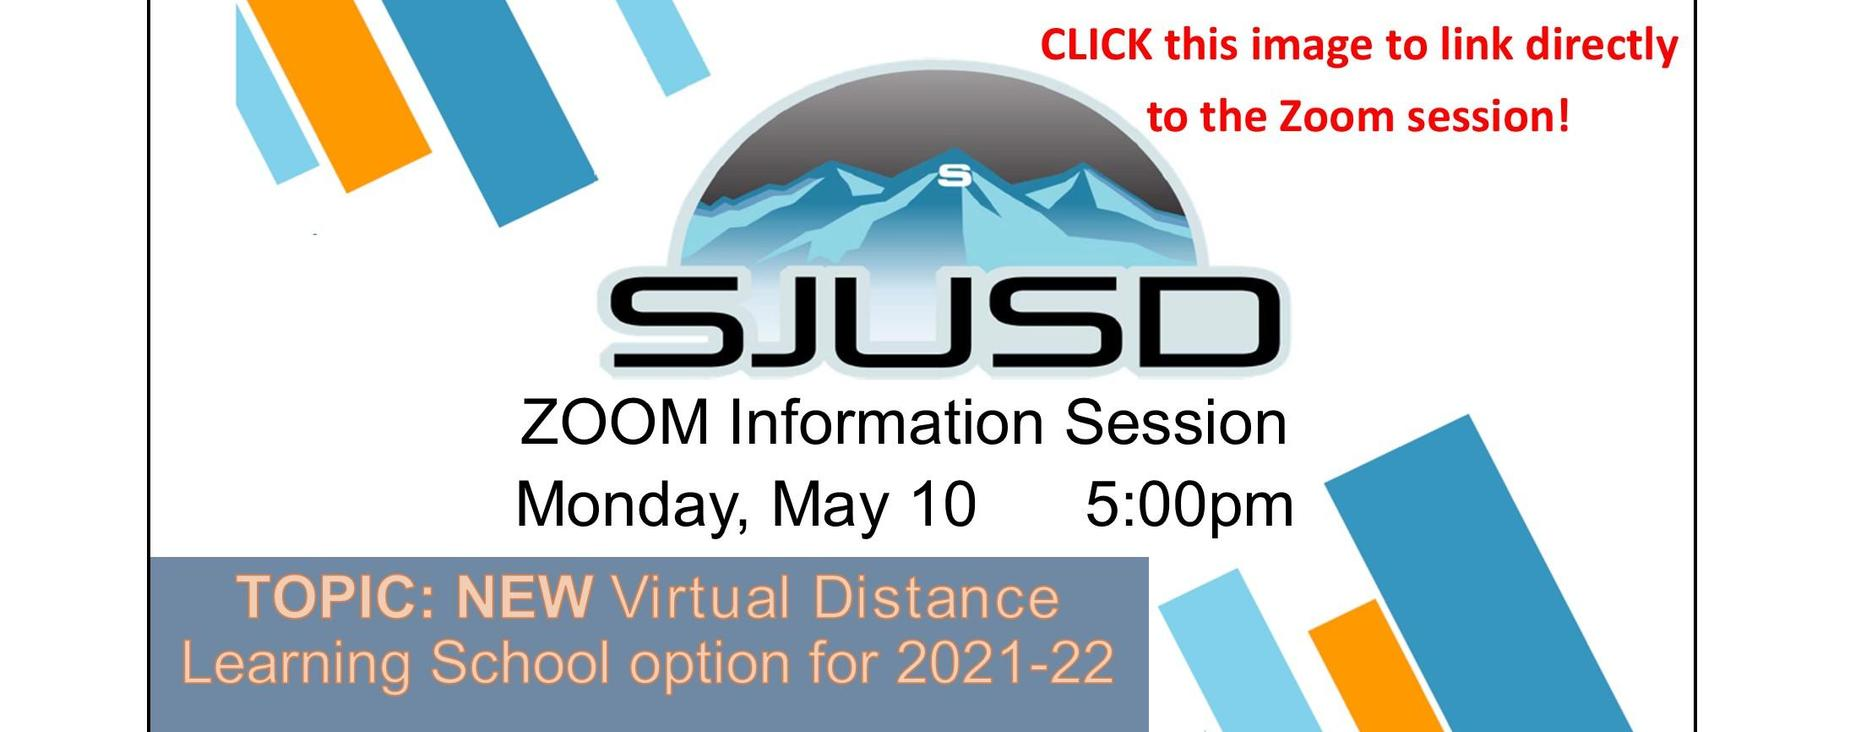 New virtual school option for 2021-22 Zoom information session